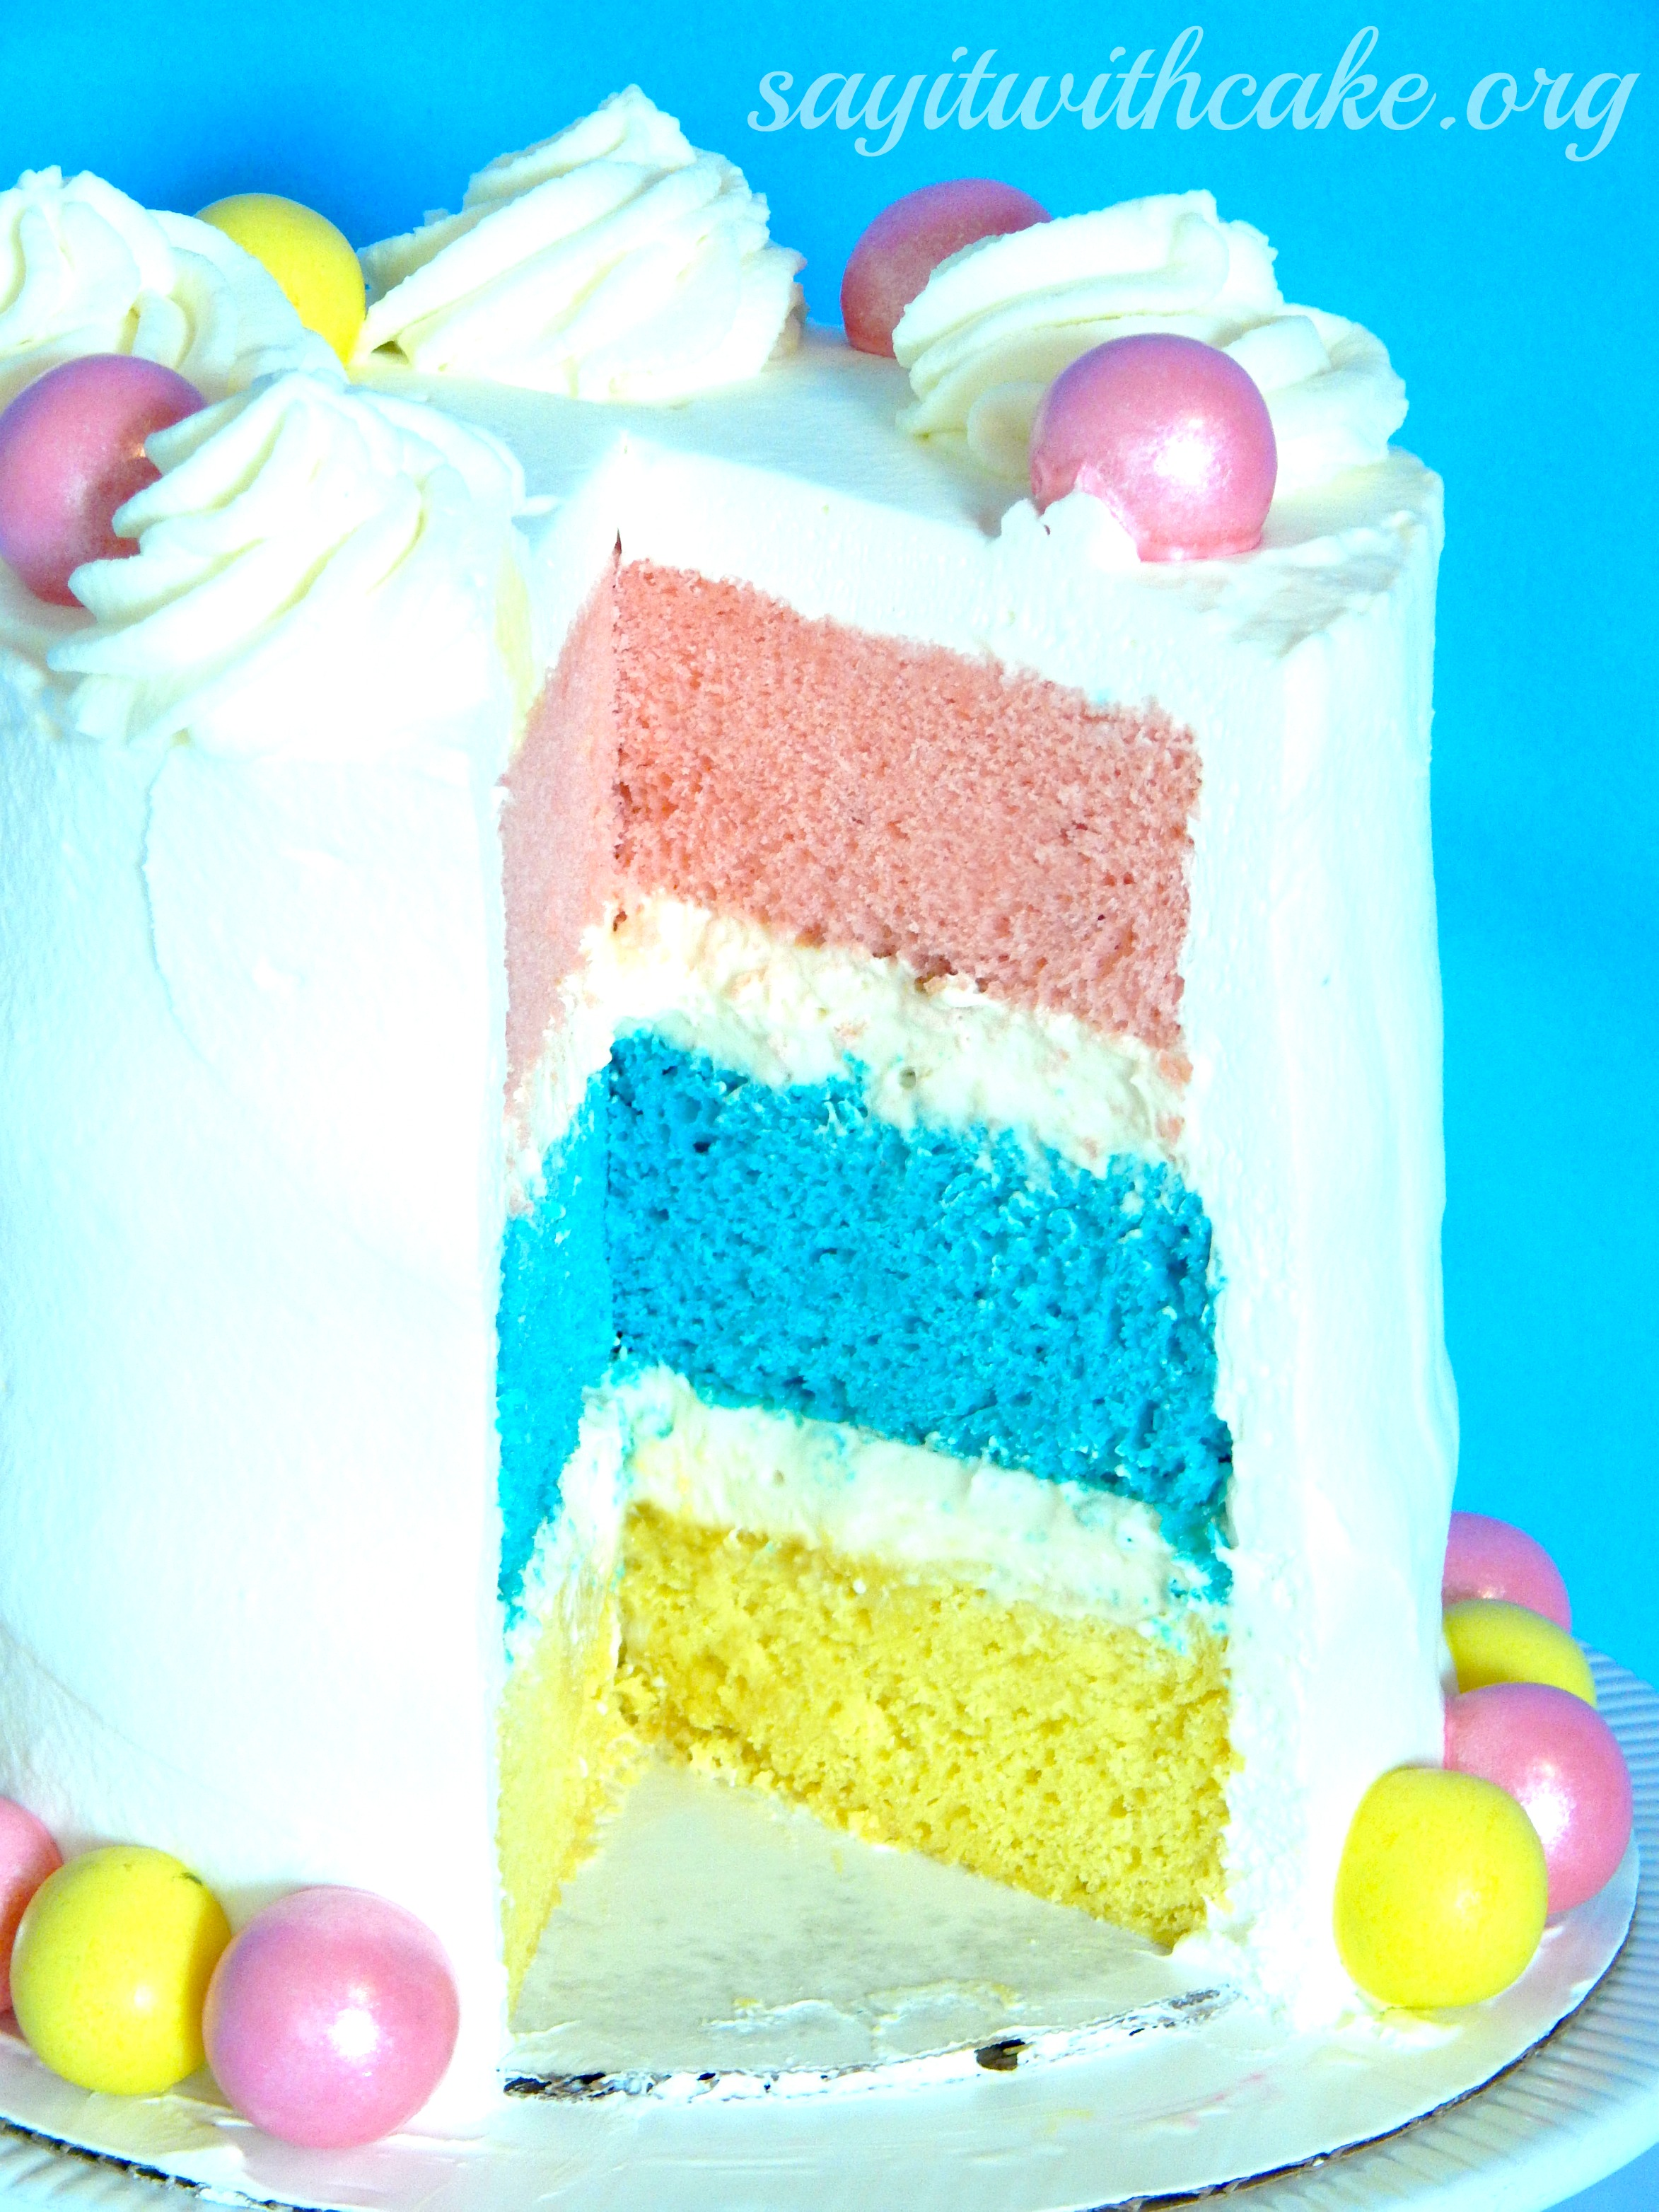 ... layered biscuits tex mex layered salad easter egg layered cake recipes